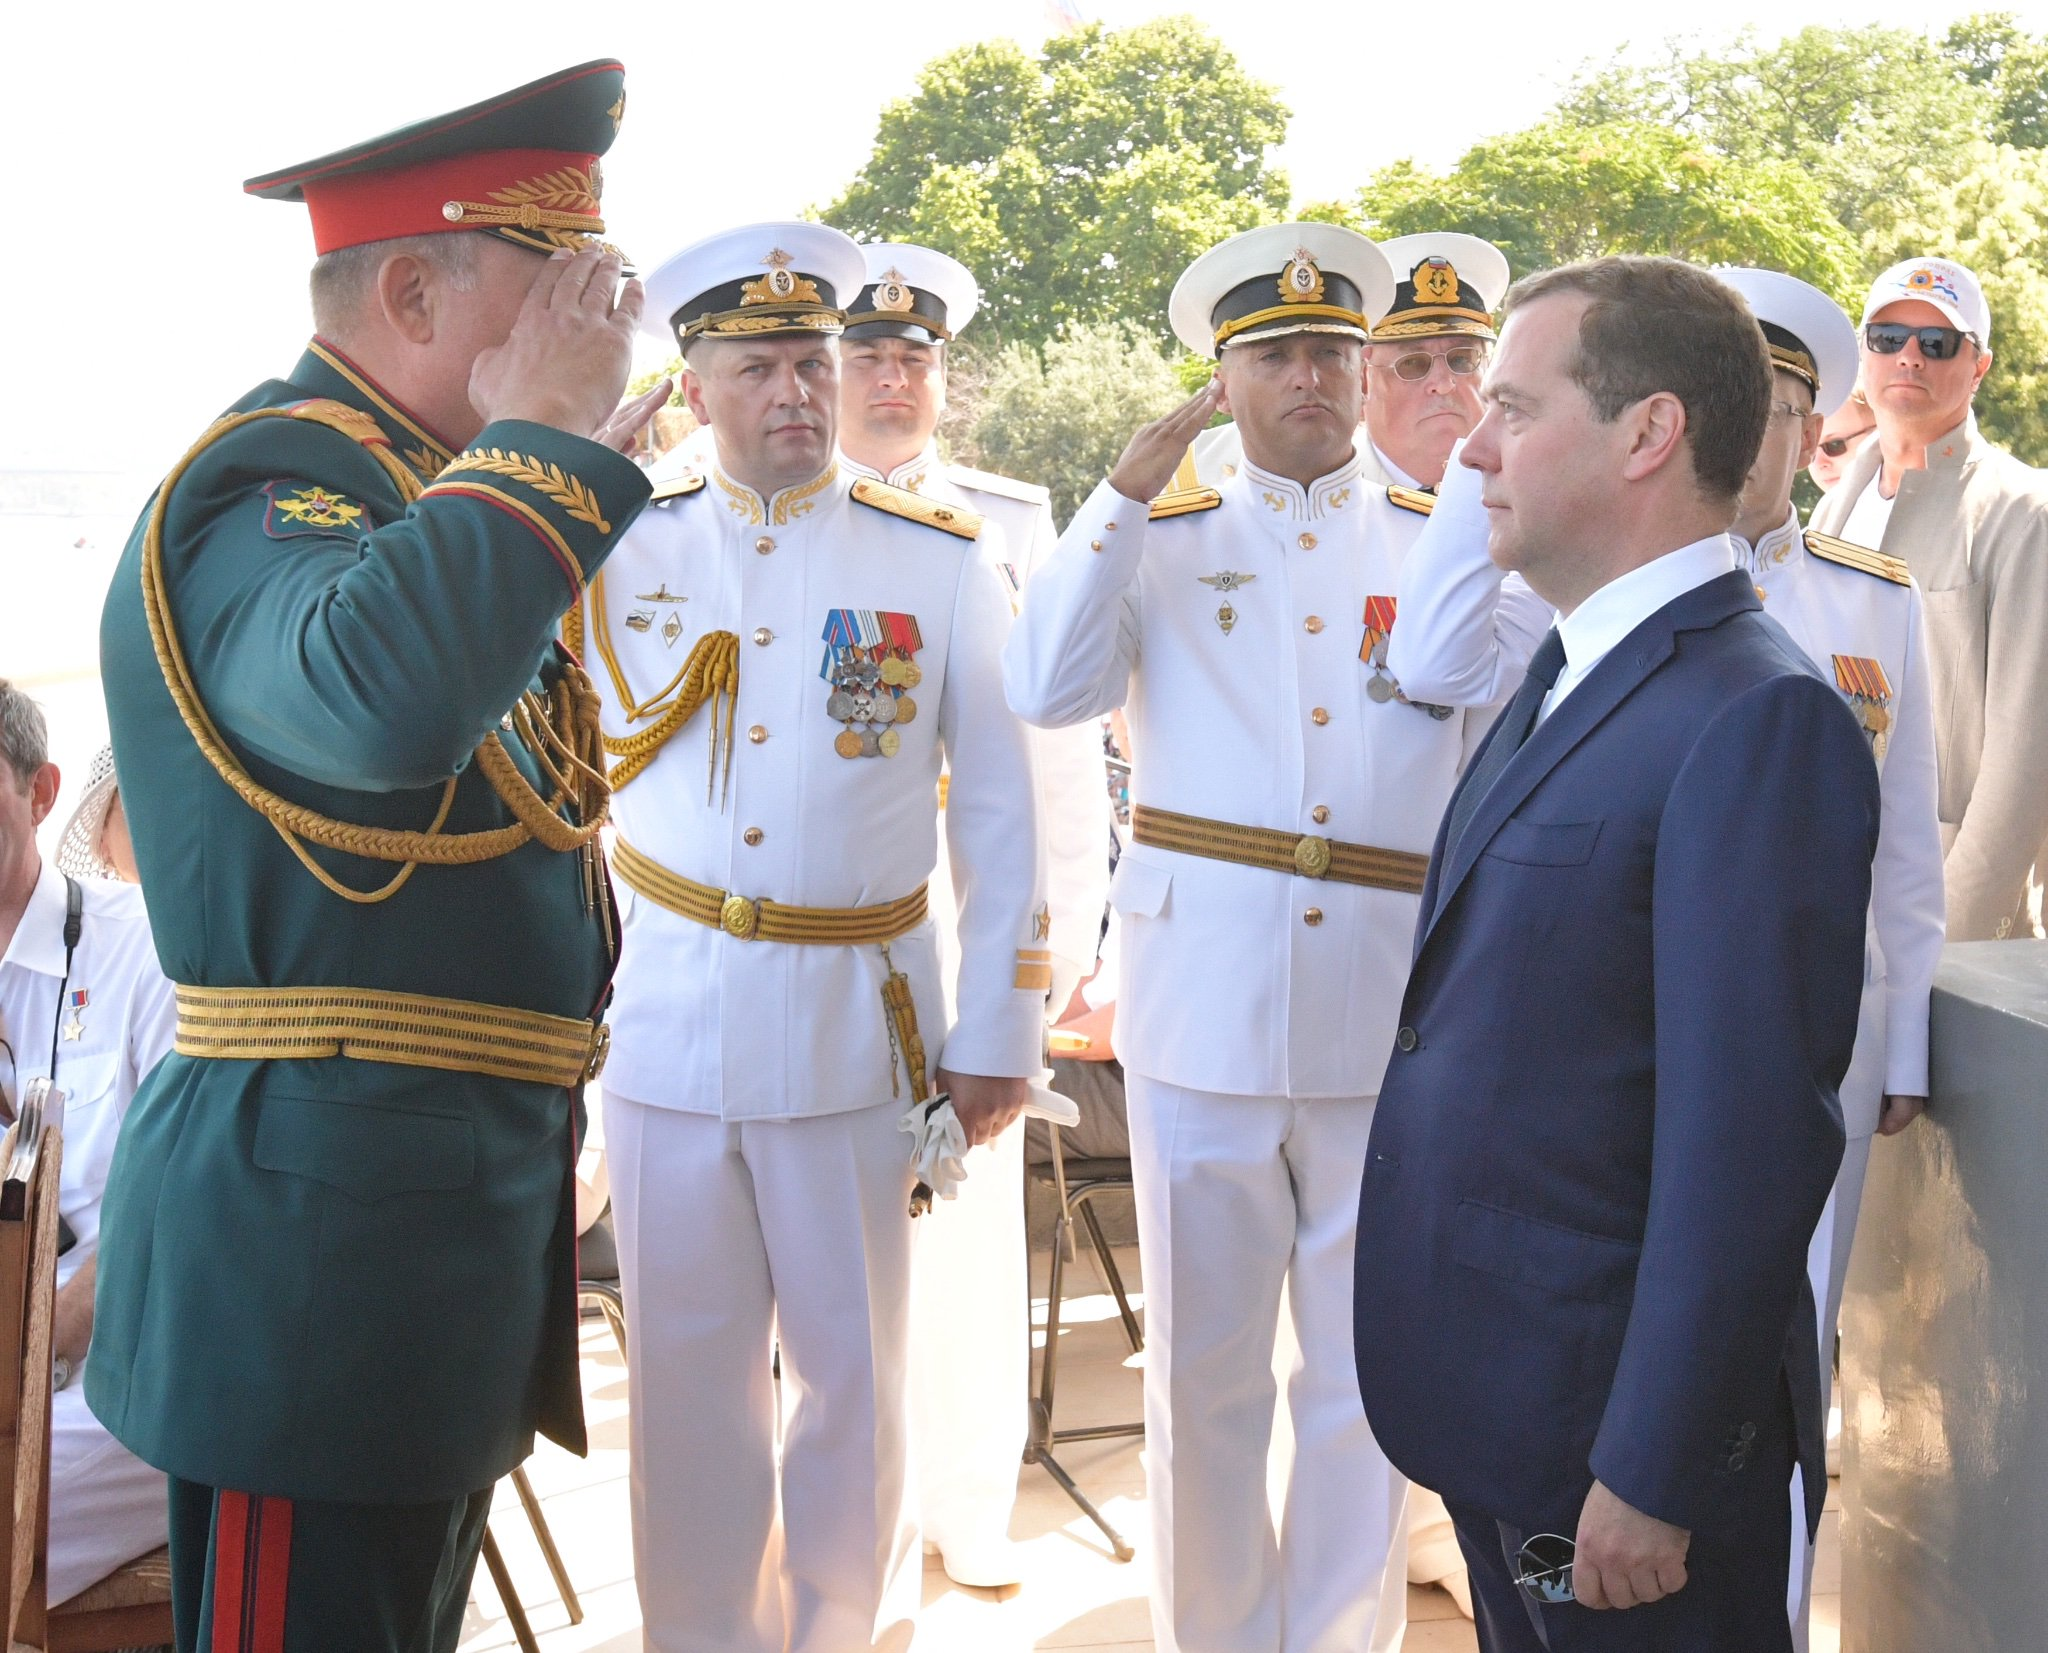 Dmitry Medvedev attended Russia's Navy Day celebrations in #Sevastopol https://t.co/8eLGYT7dEm